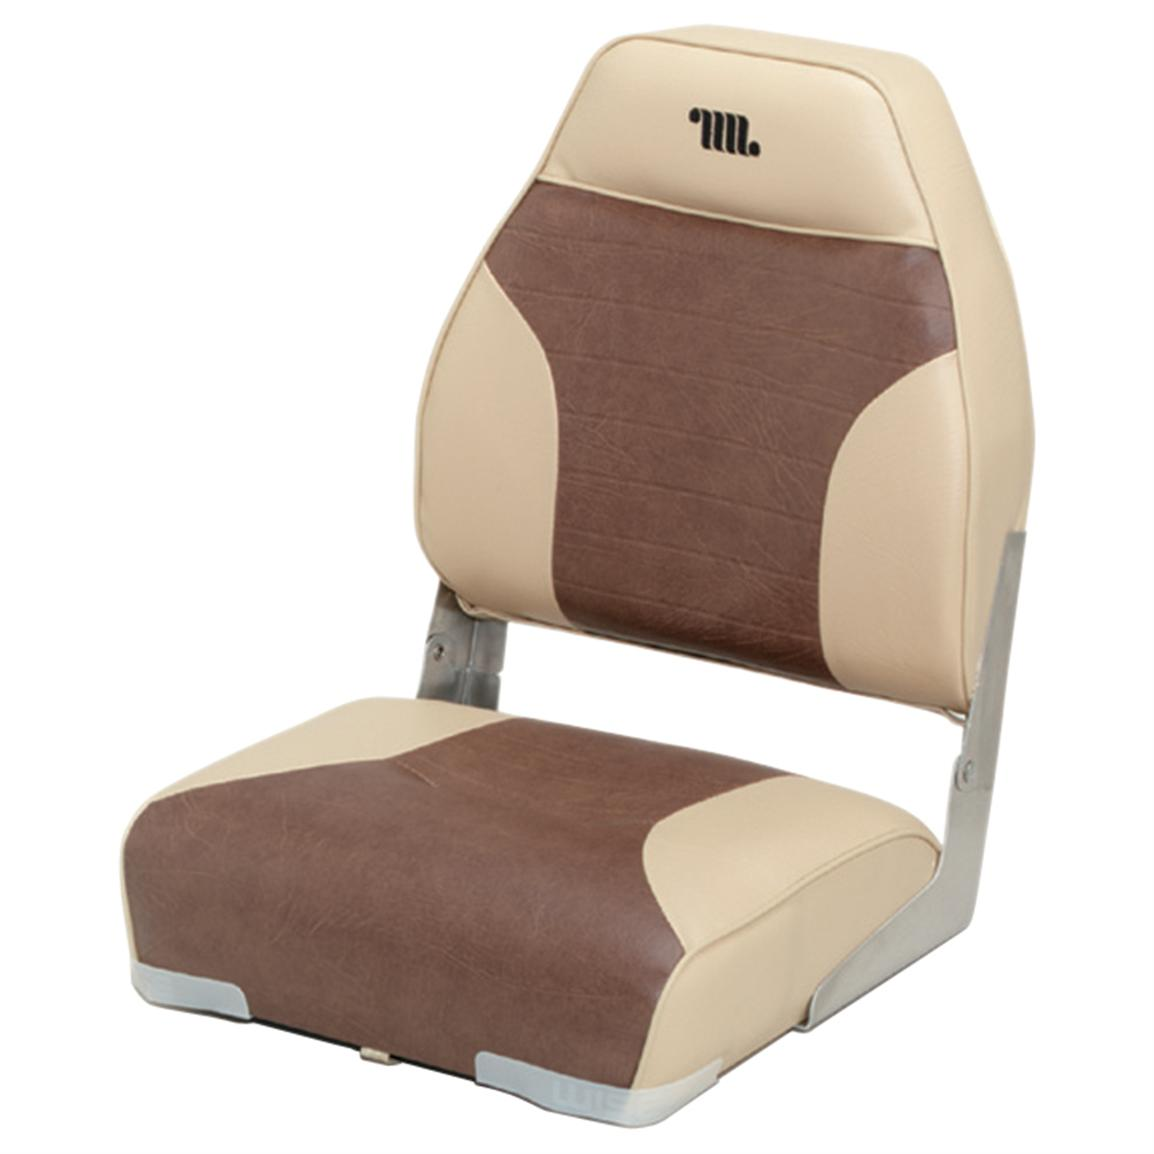 Wise Premium Folding Fishing Boat Seat, Sand / Brown